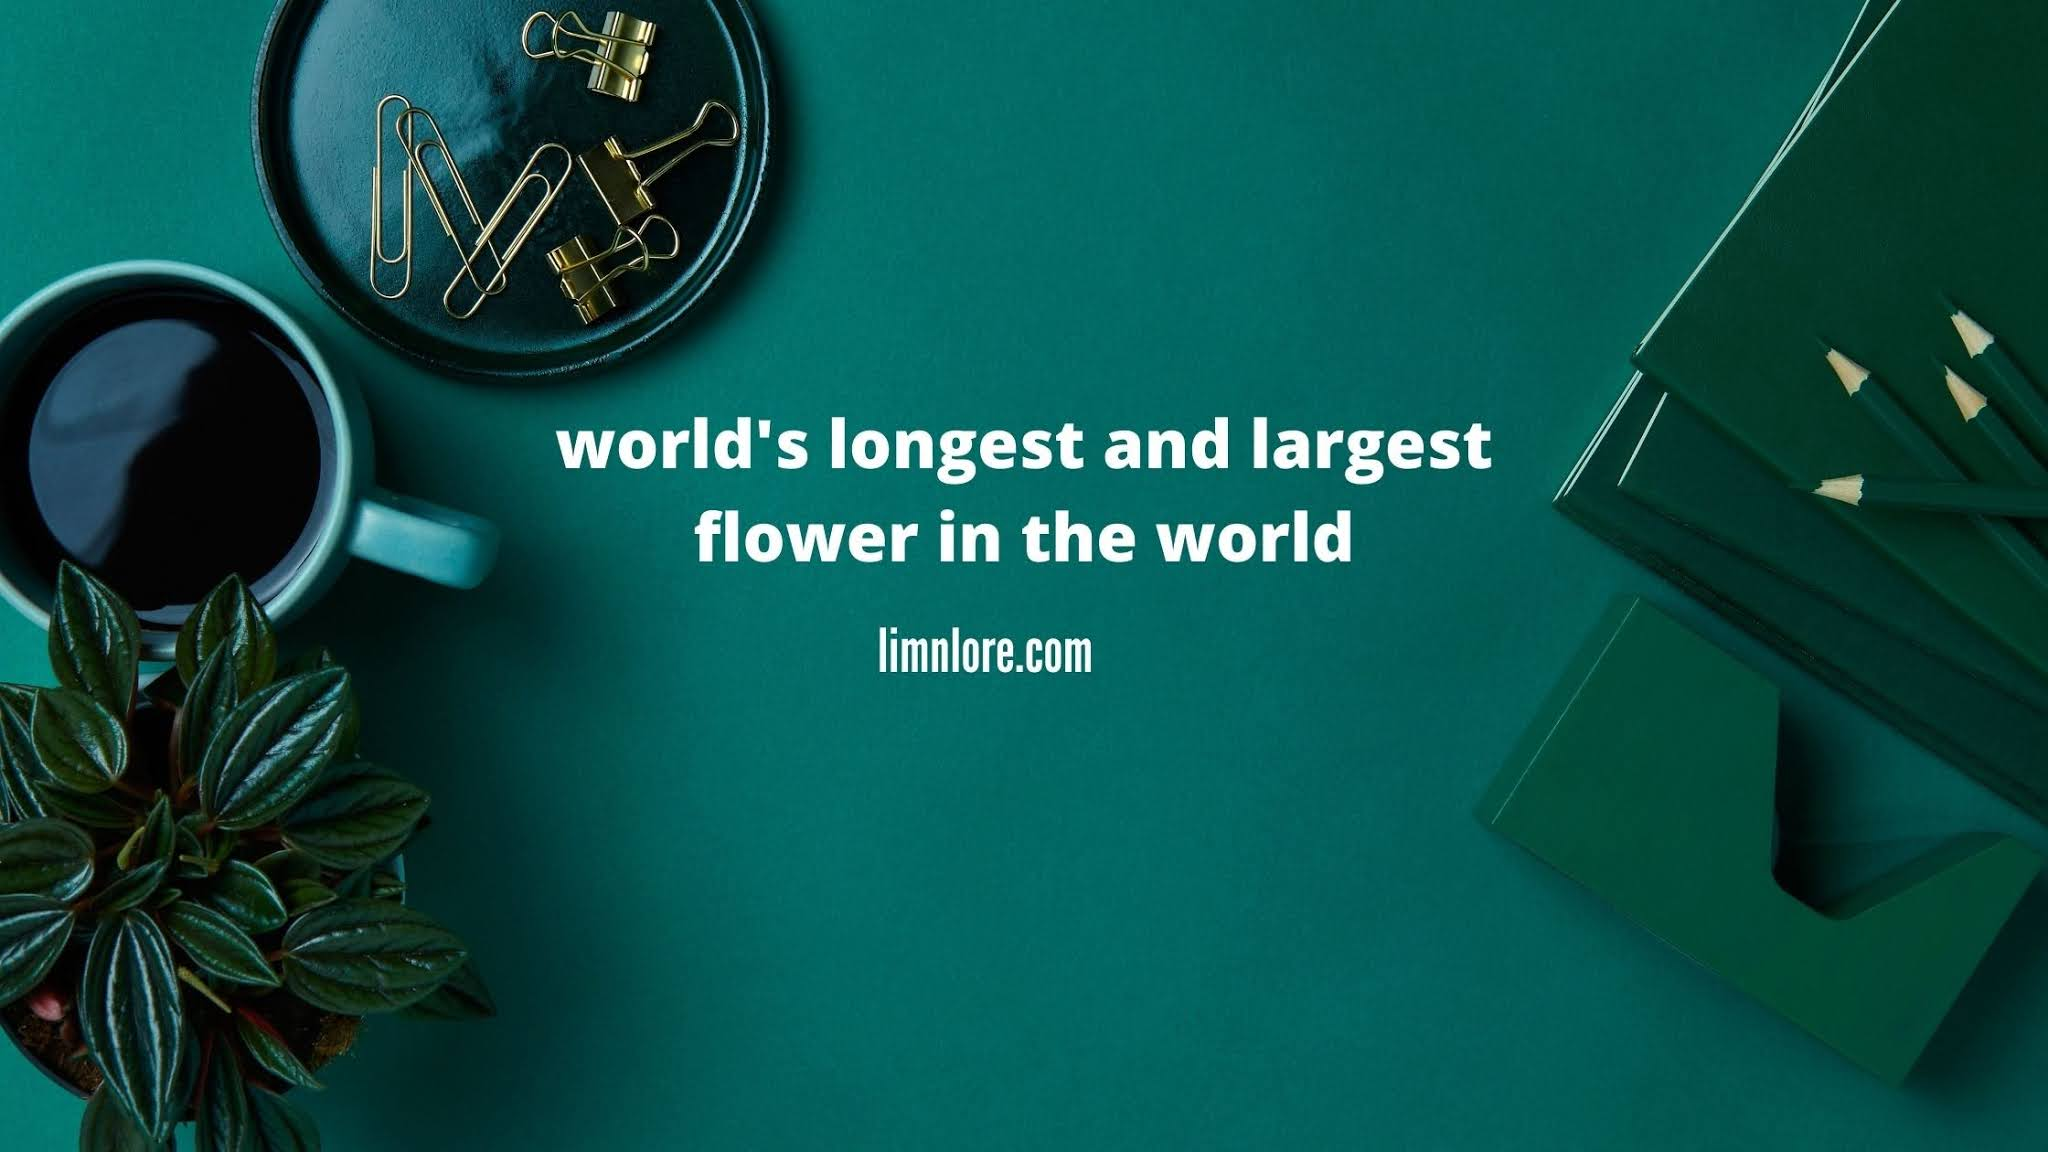 world's longest and largest flower in the world